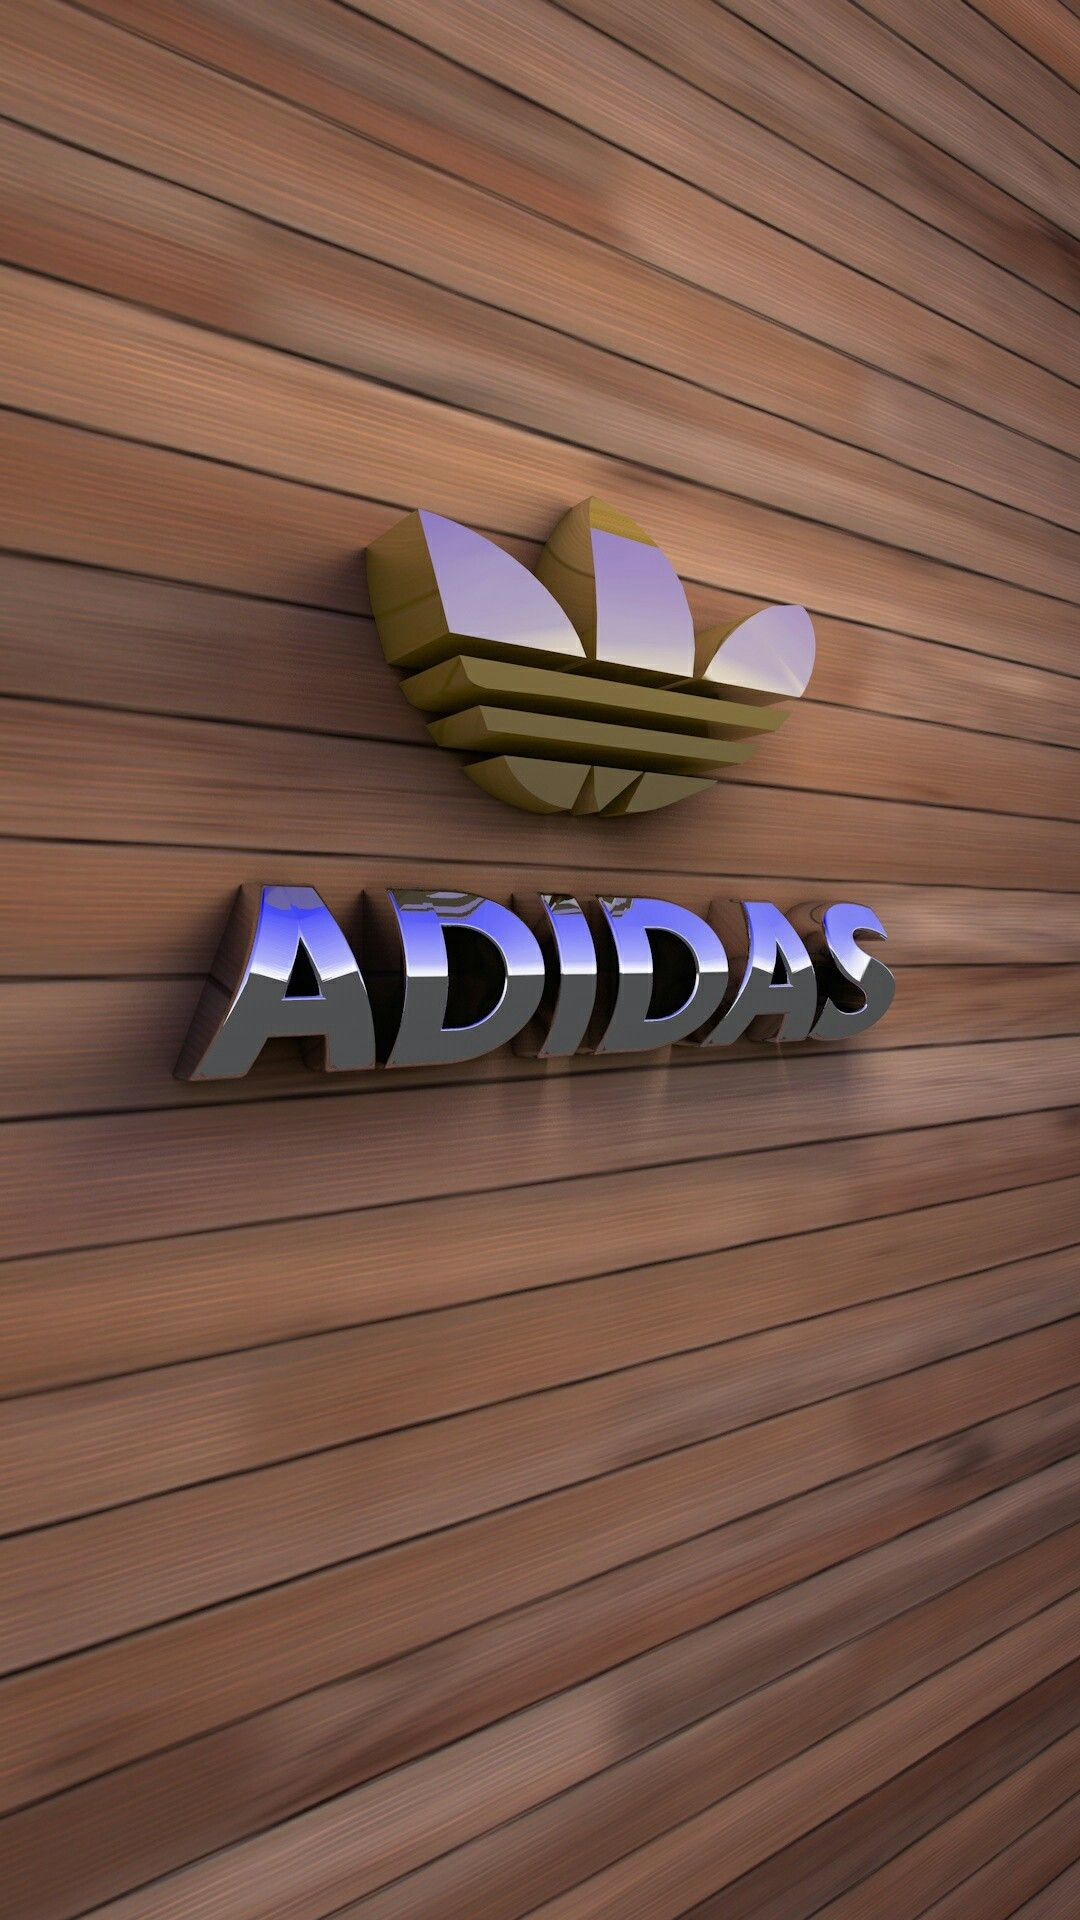 1080x1920 Adidas Wallpaper Brands Other Wallpapers) HD